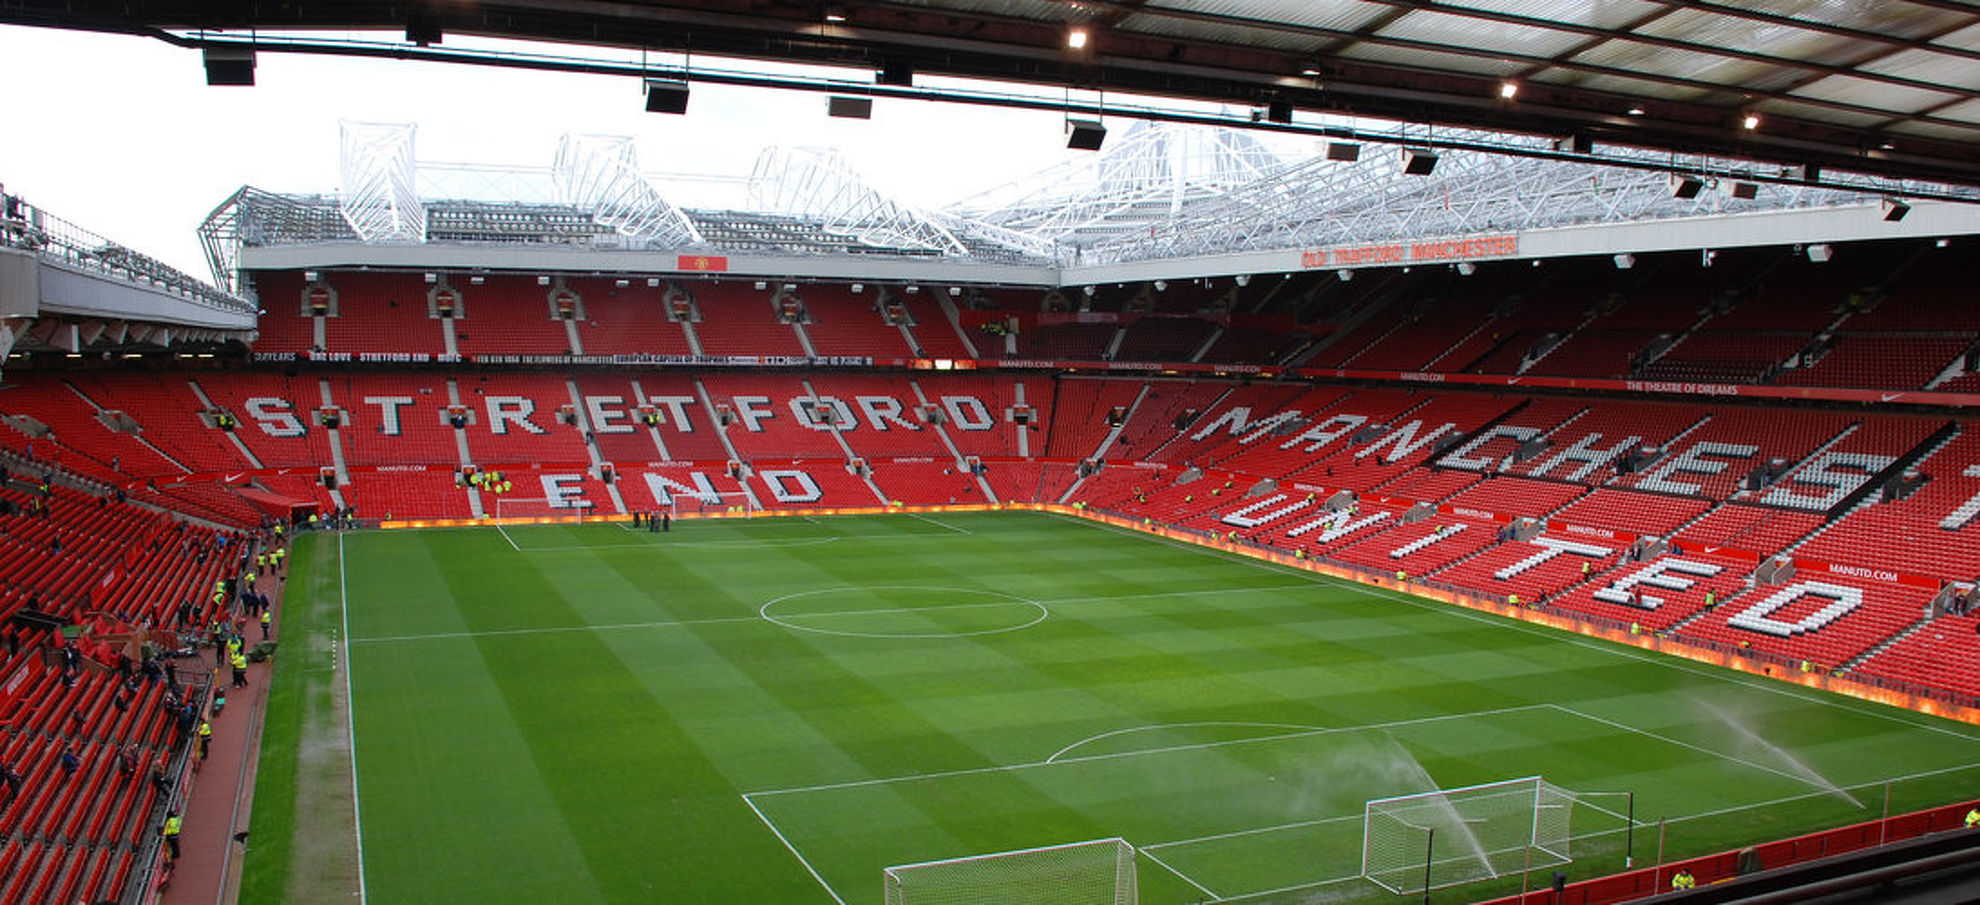 Explore Old Trafford